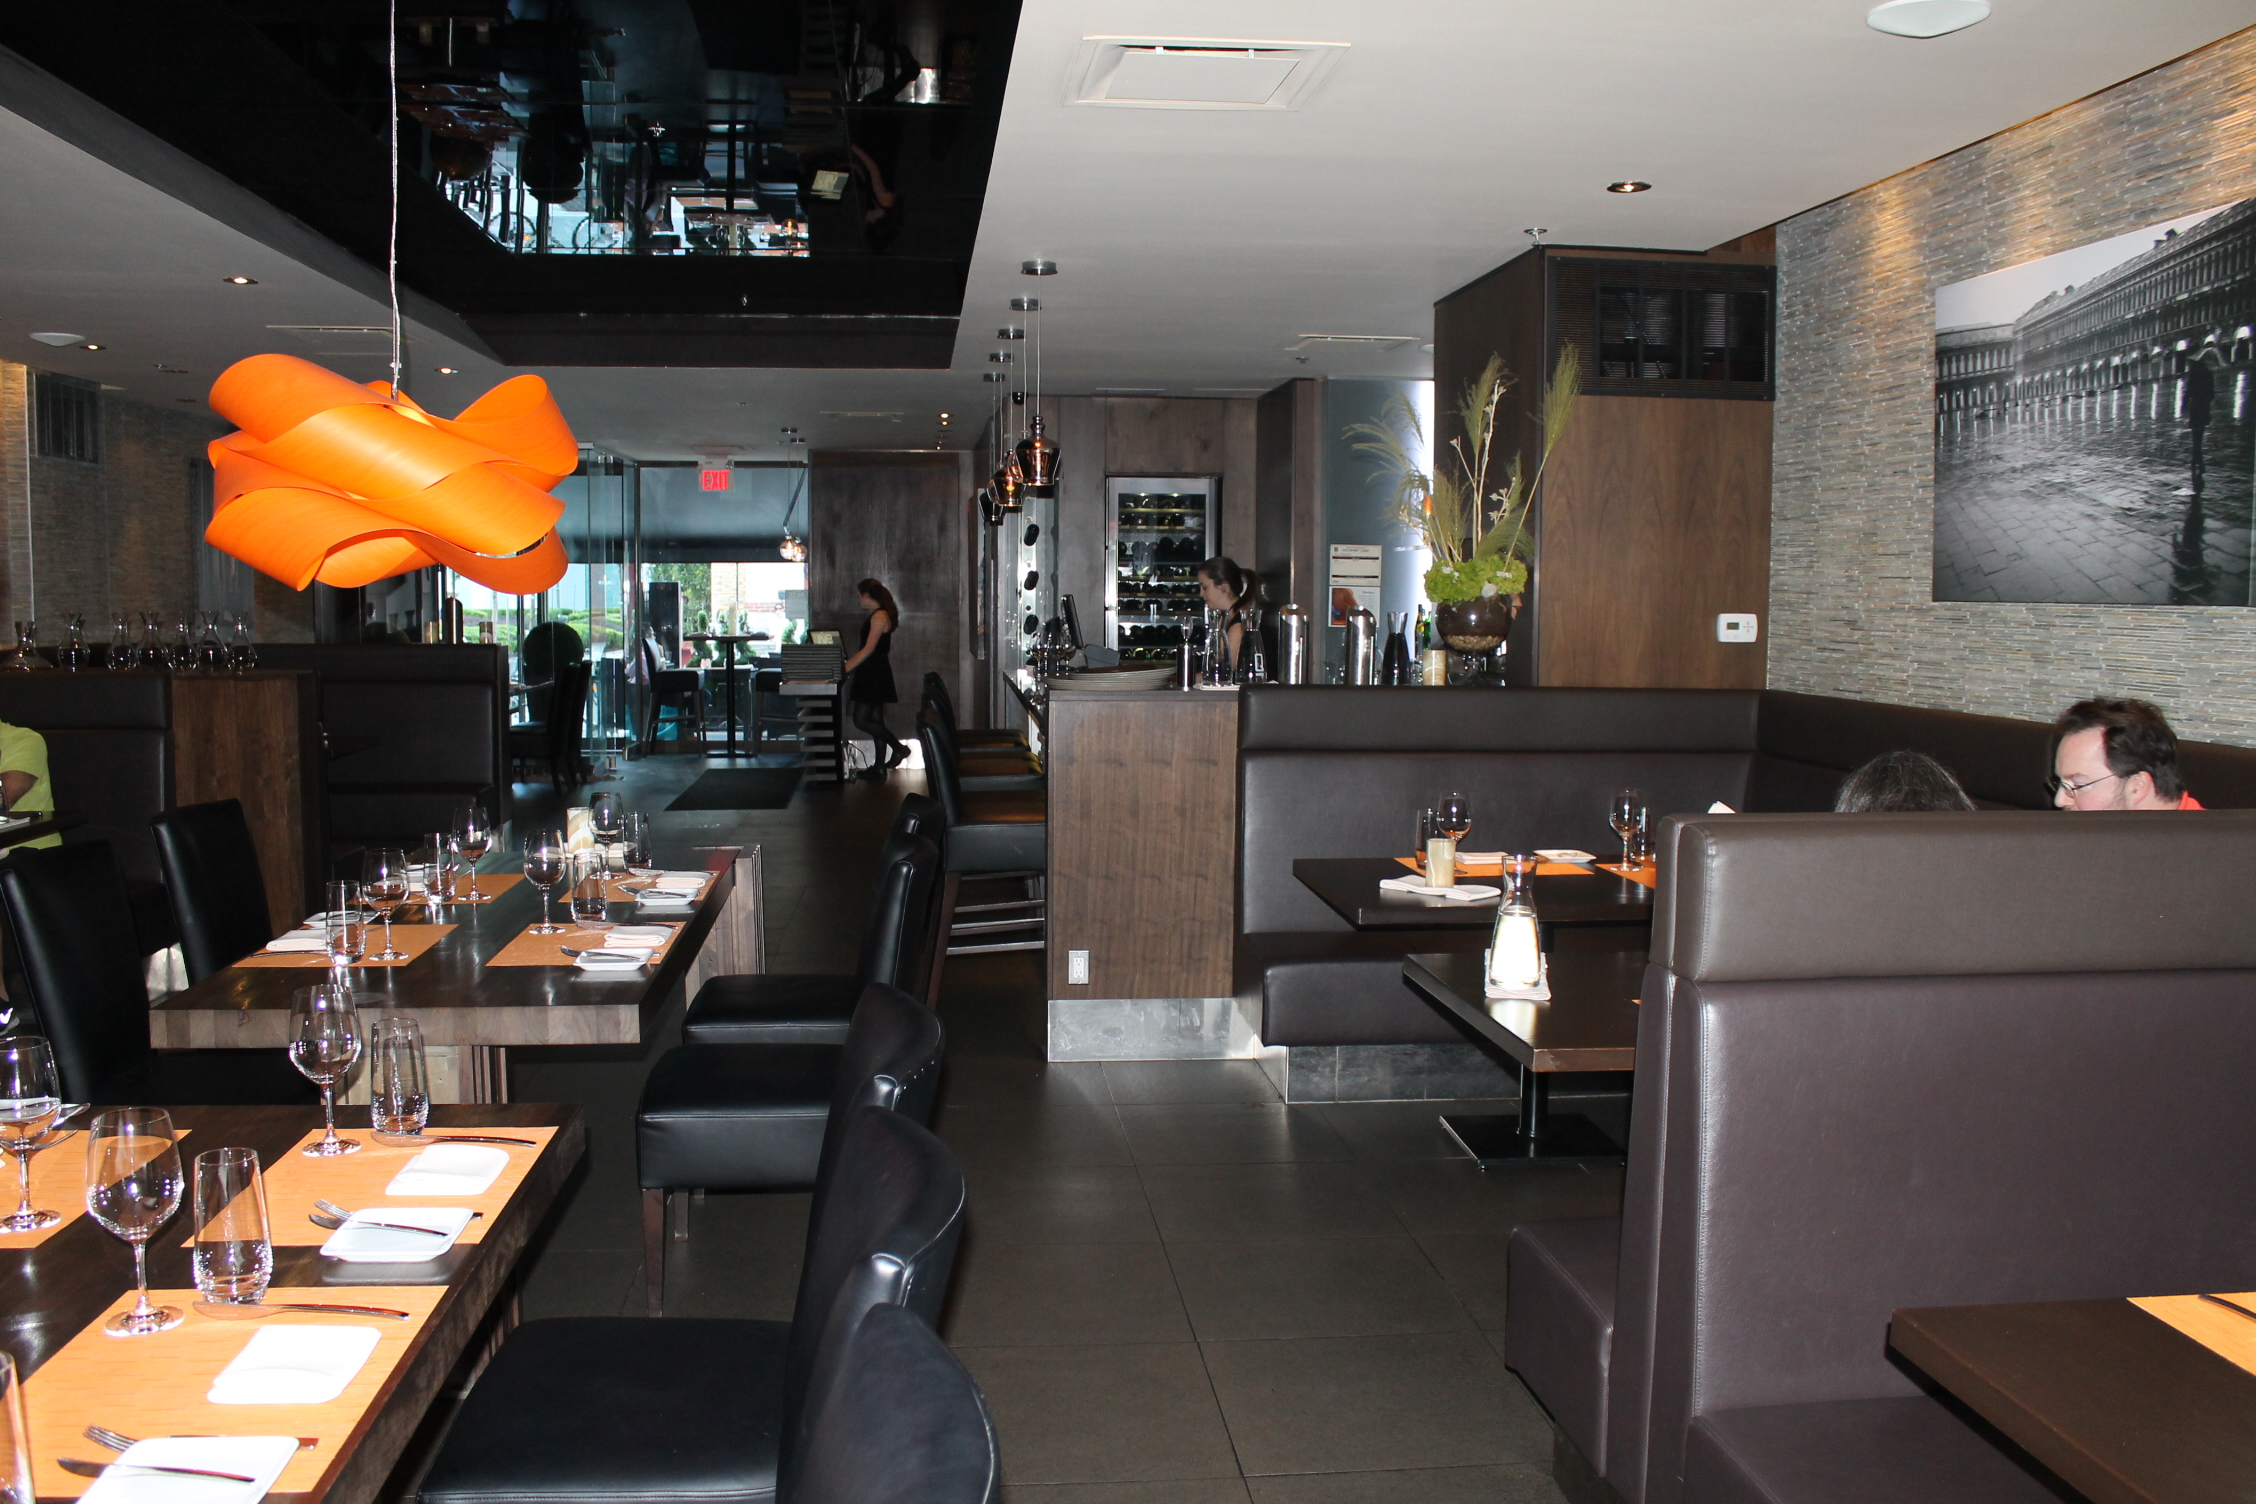 Picture of accessible dining area of restaurant.